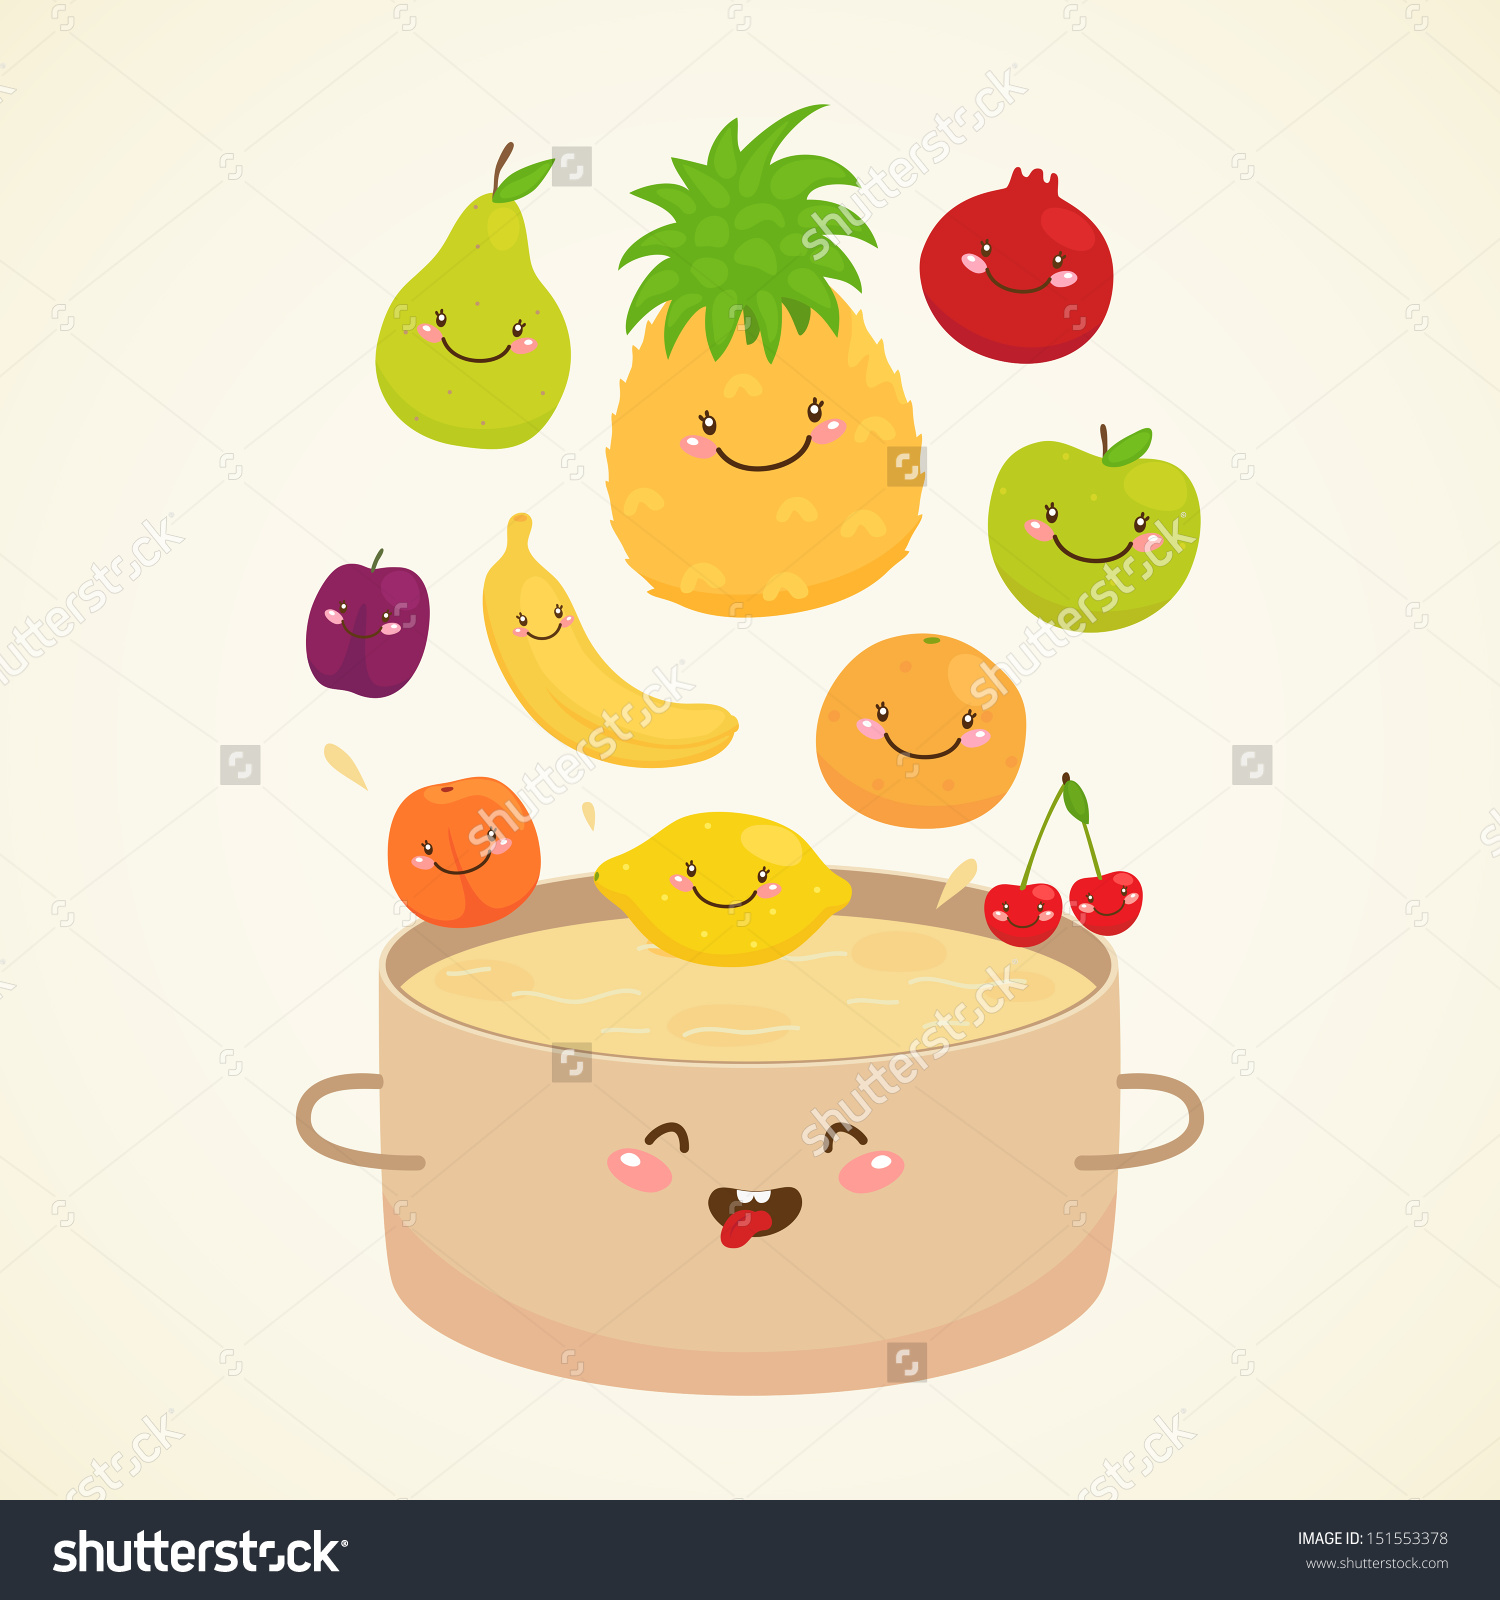 Compote: Apple, Pear, Lemon, Orange, Plum, Cherry, Pineapple.